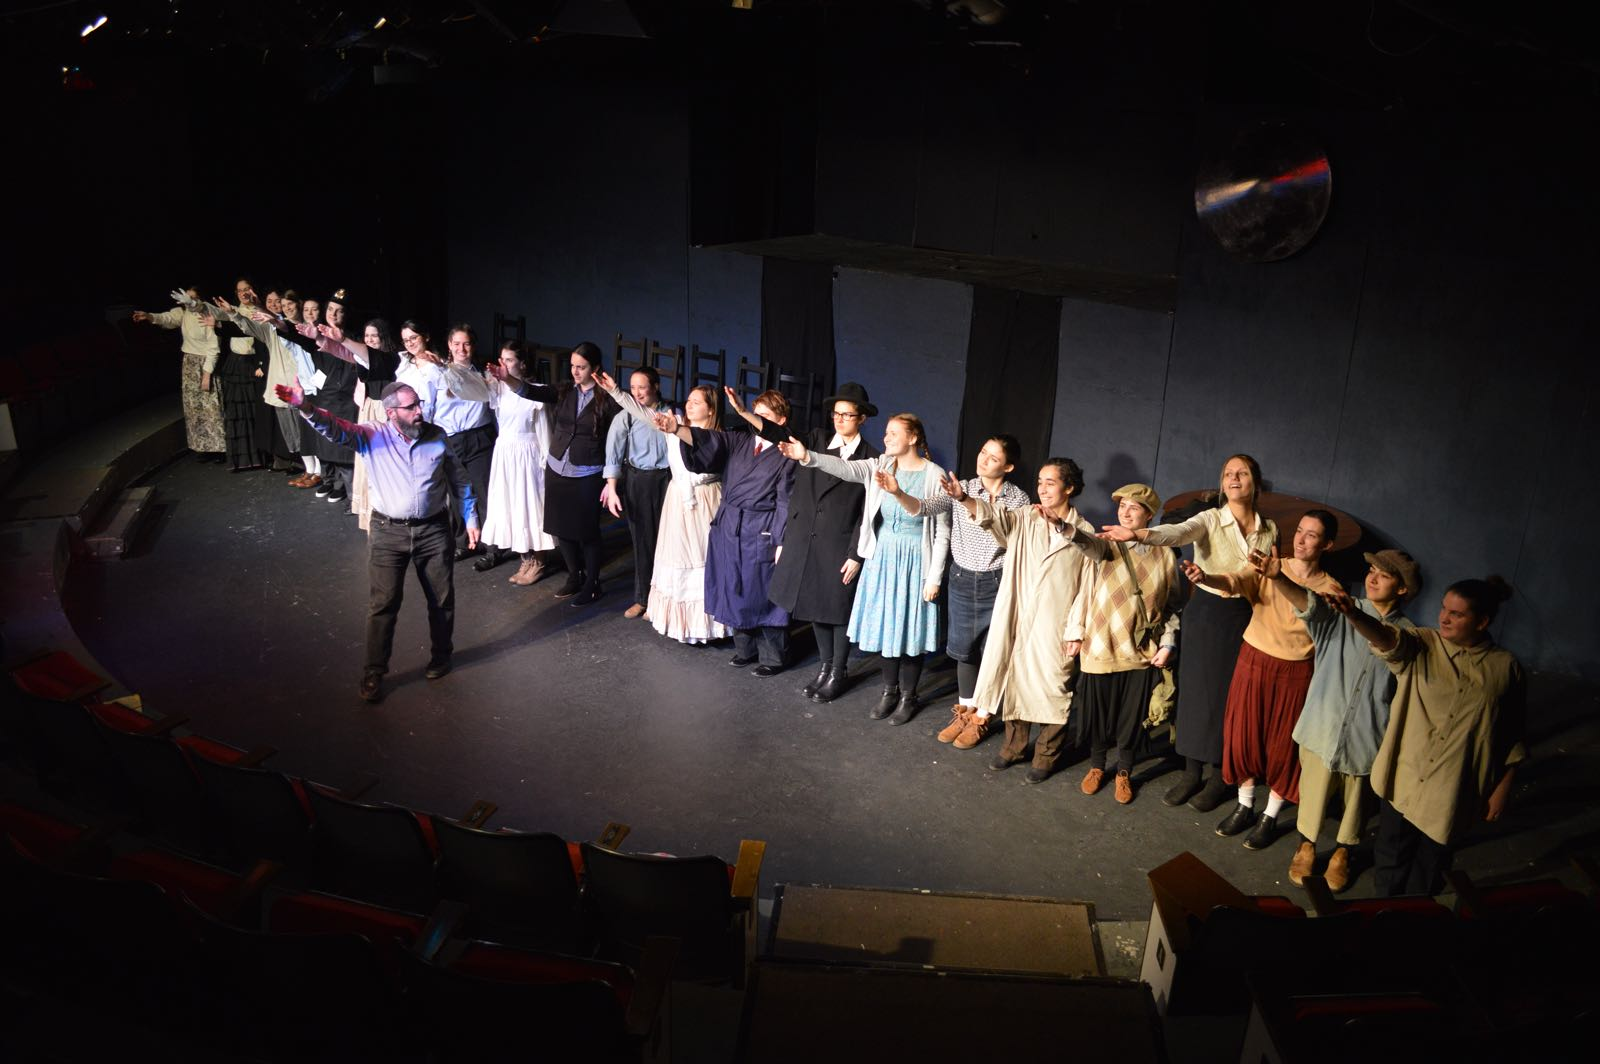 SCDS to Receive Academic Credit for Fall Production